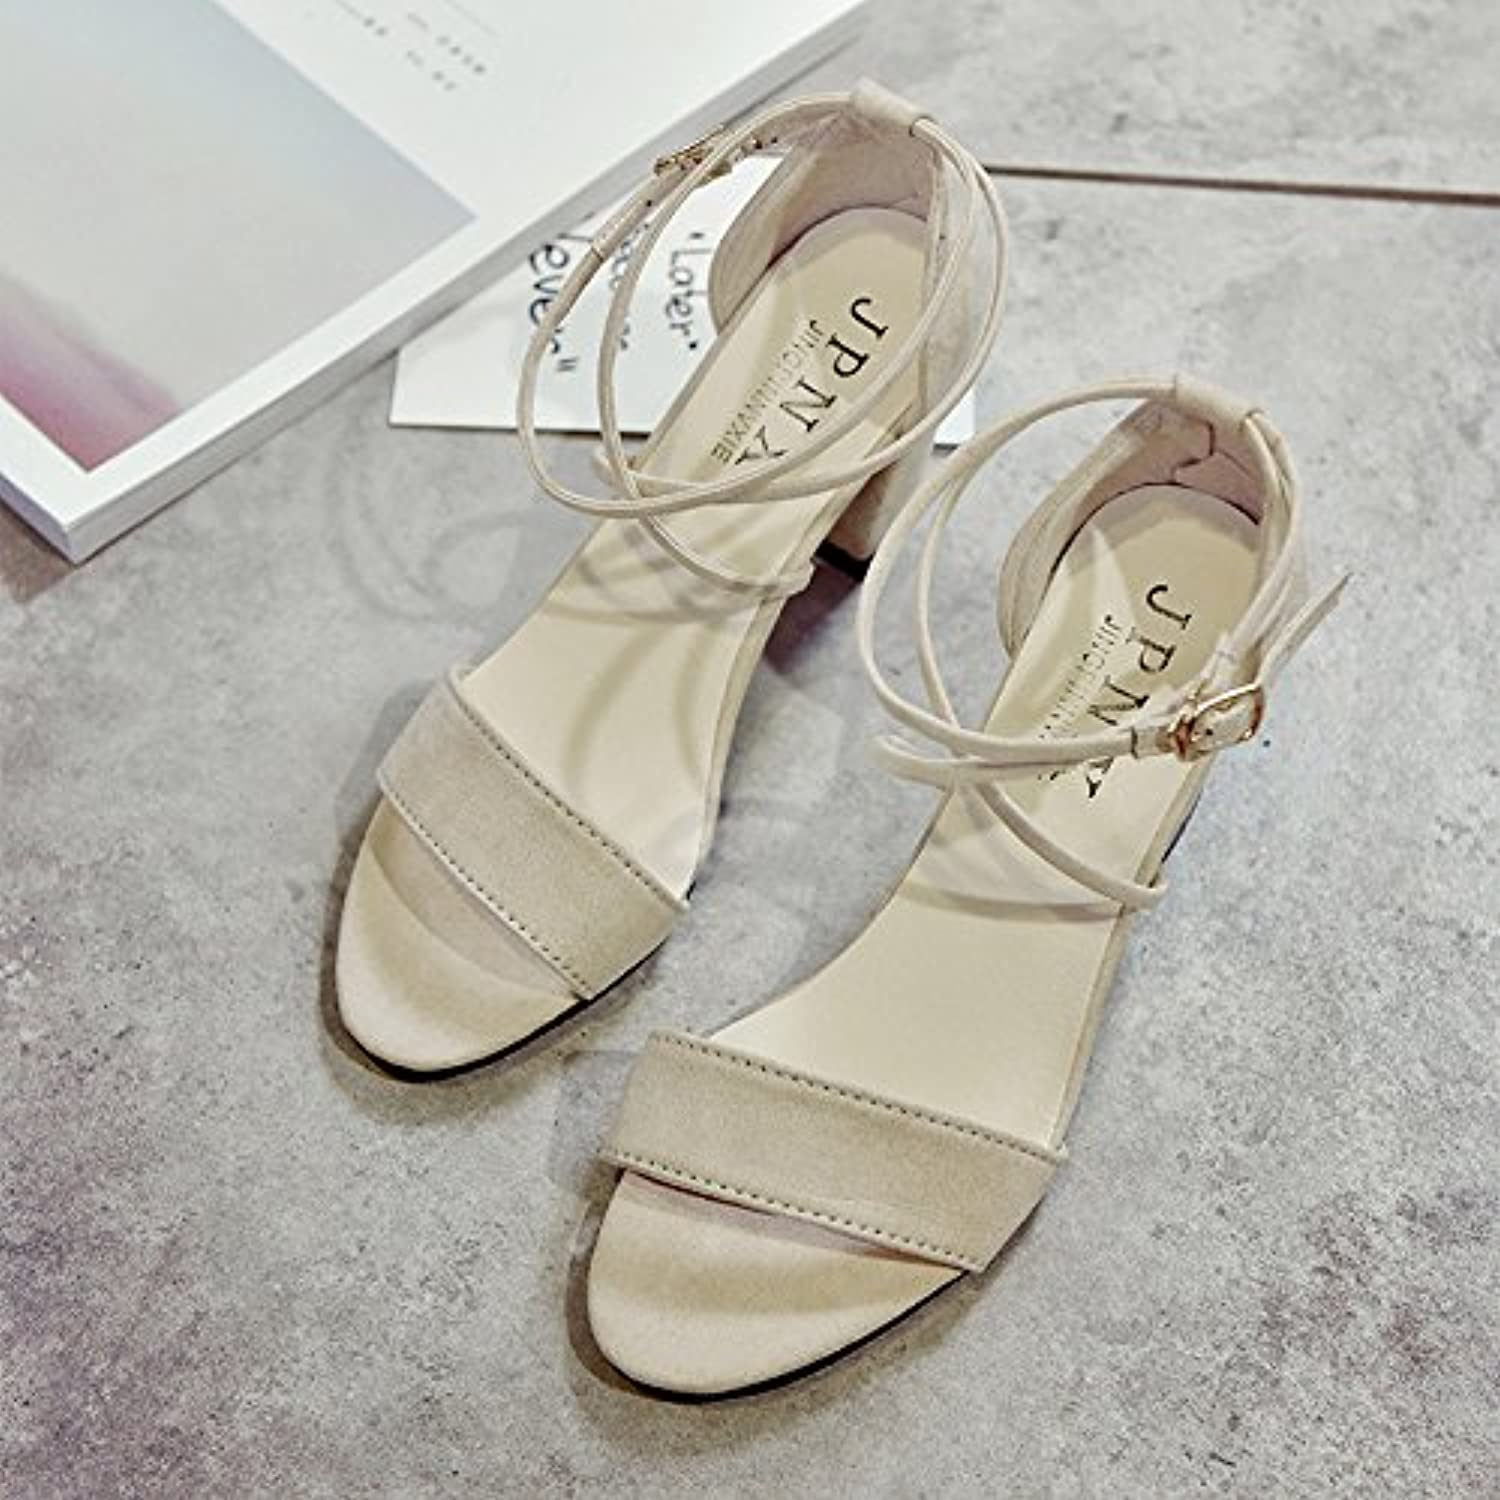 c10a572242c2 RUGAI-UE Summer Is Thick Open Open Open Toe Shoes Buckle Strap Fashion Show  Thcool